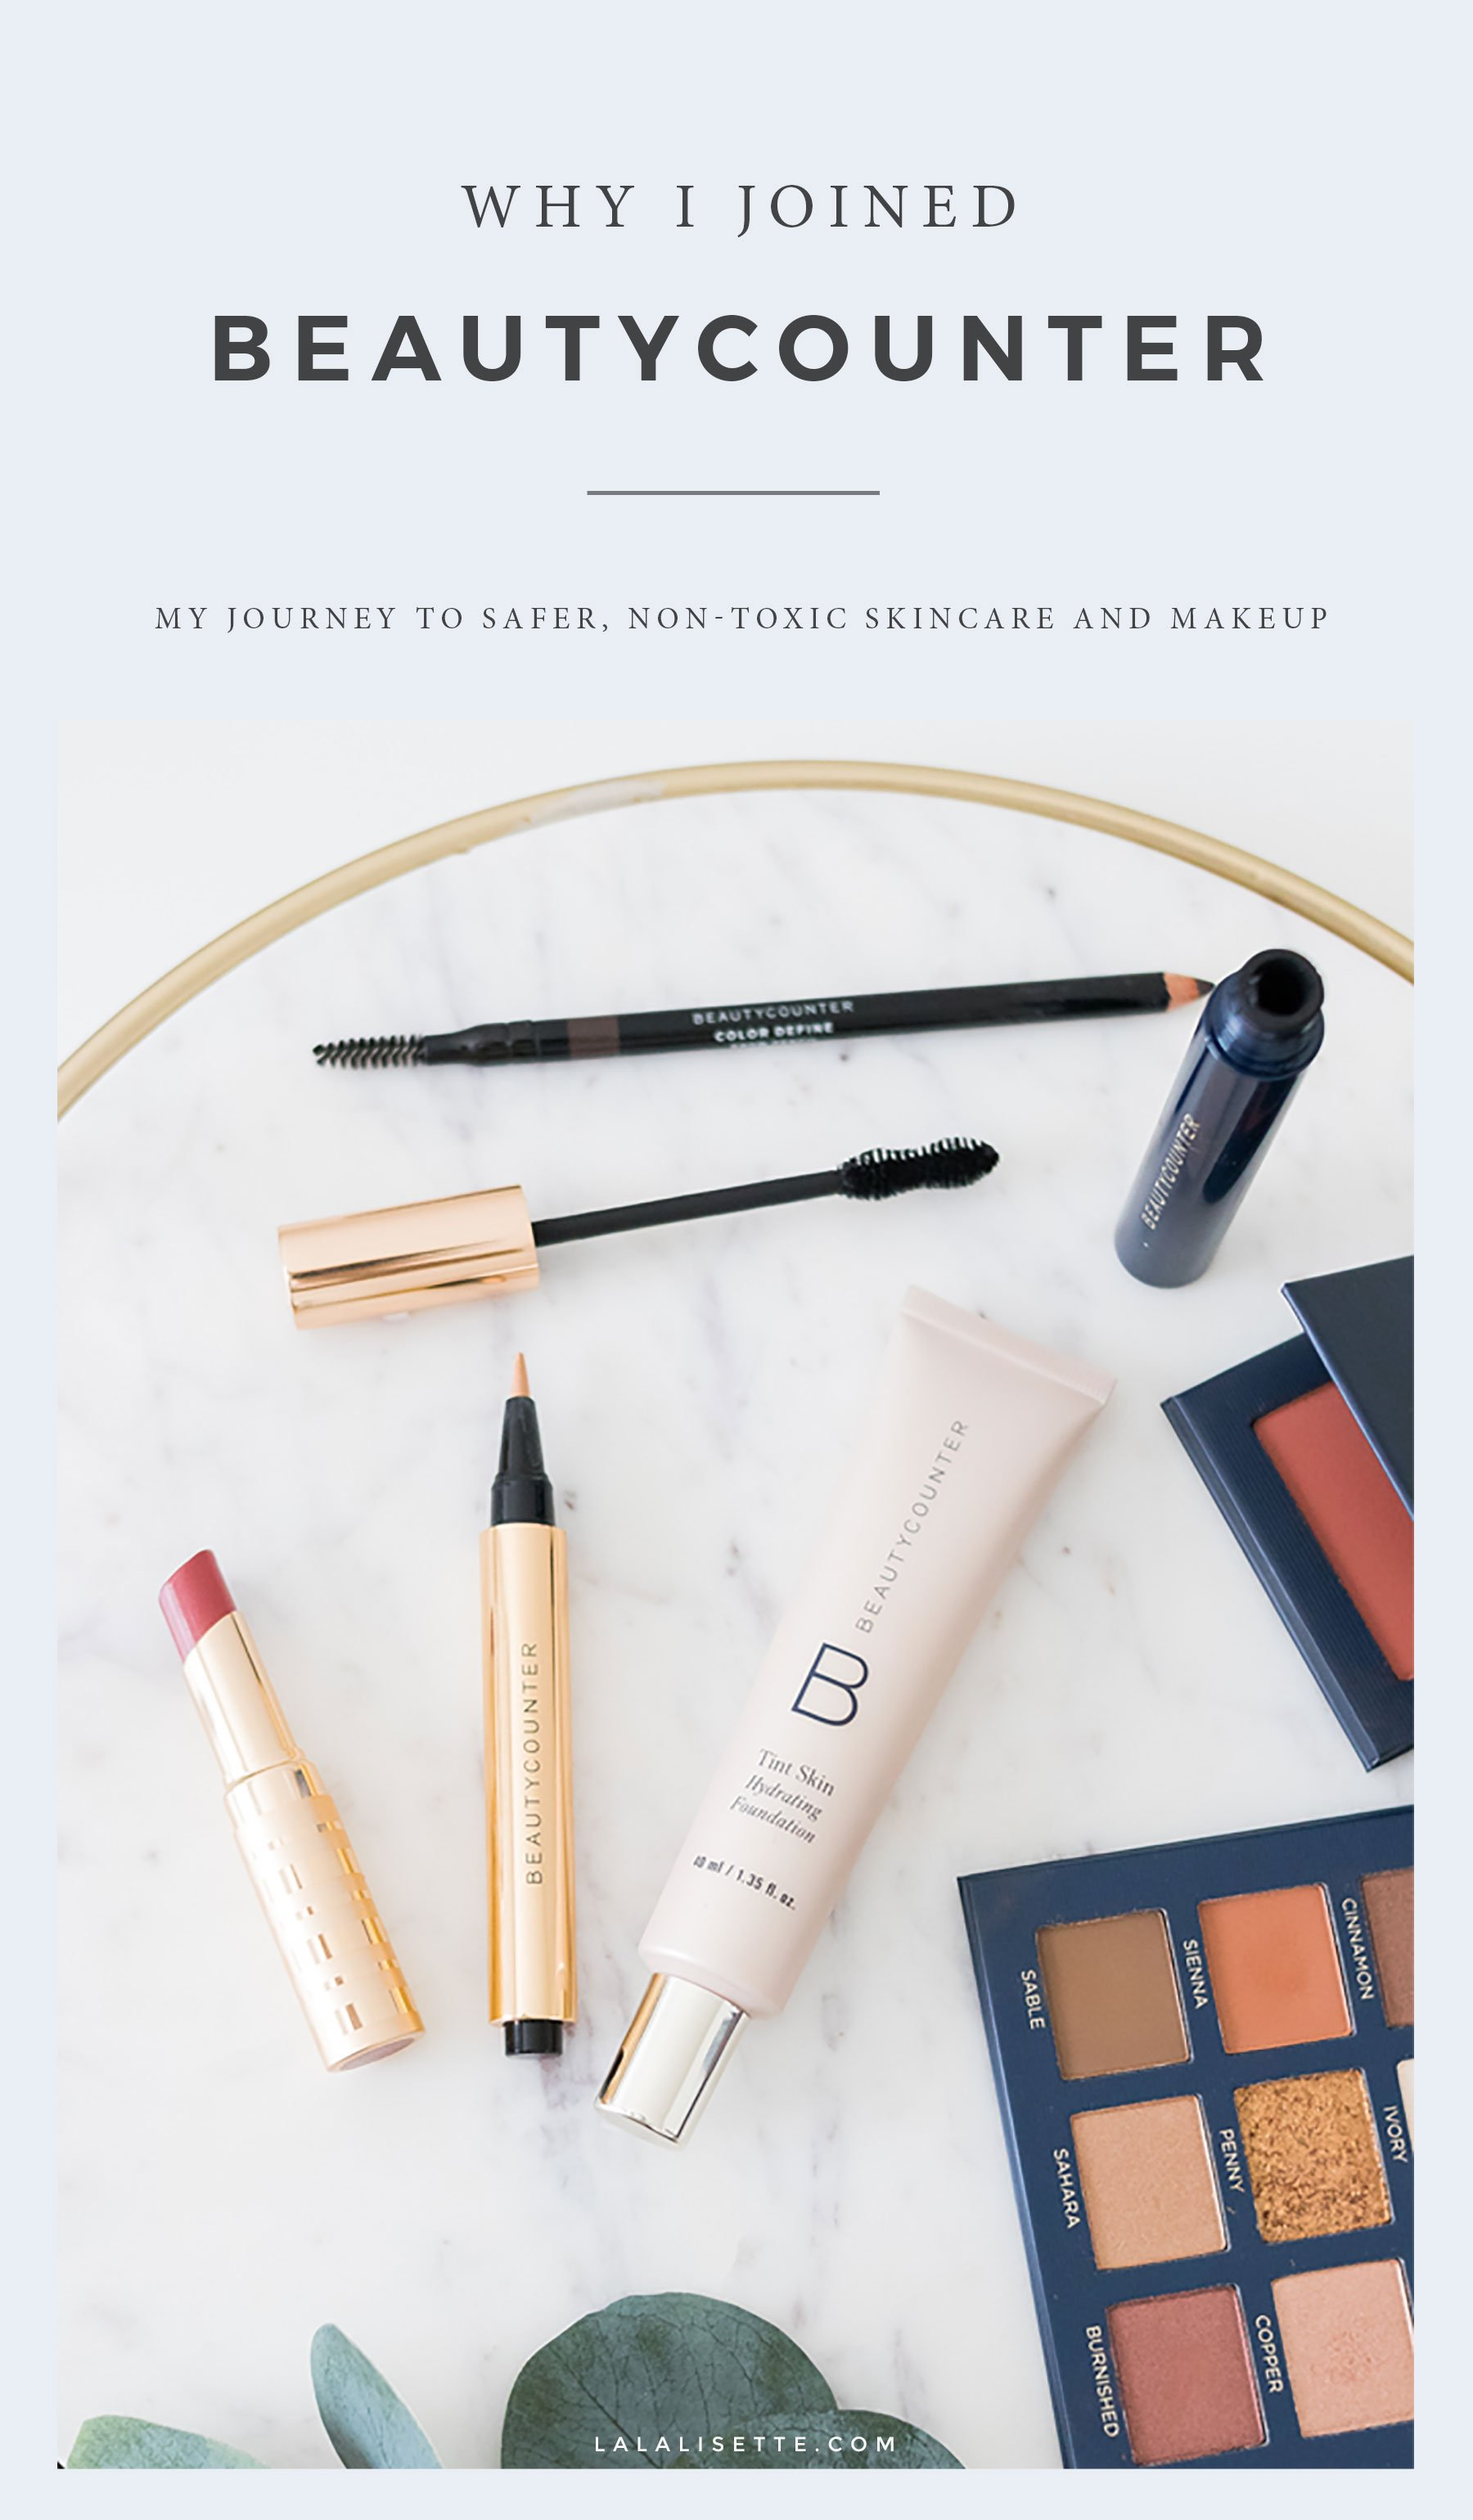 Beautycounter makeup on marble tray with text overlay – Why I Joined Beautycounter - My Journey to Safer, Non-Toxic Skincare and Beauty